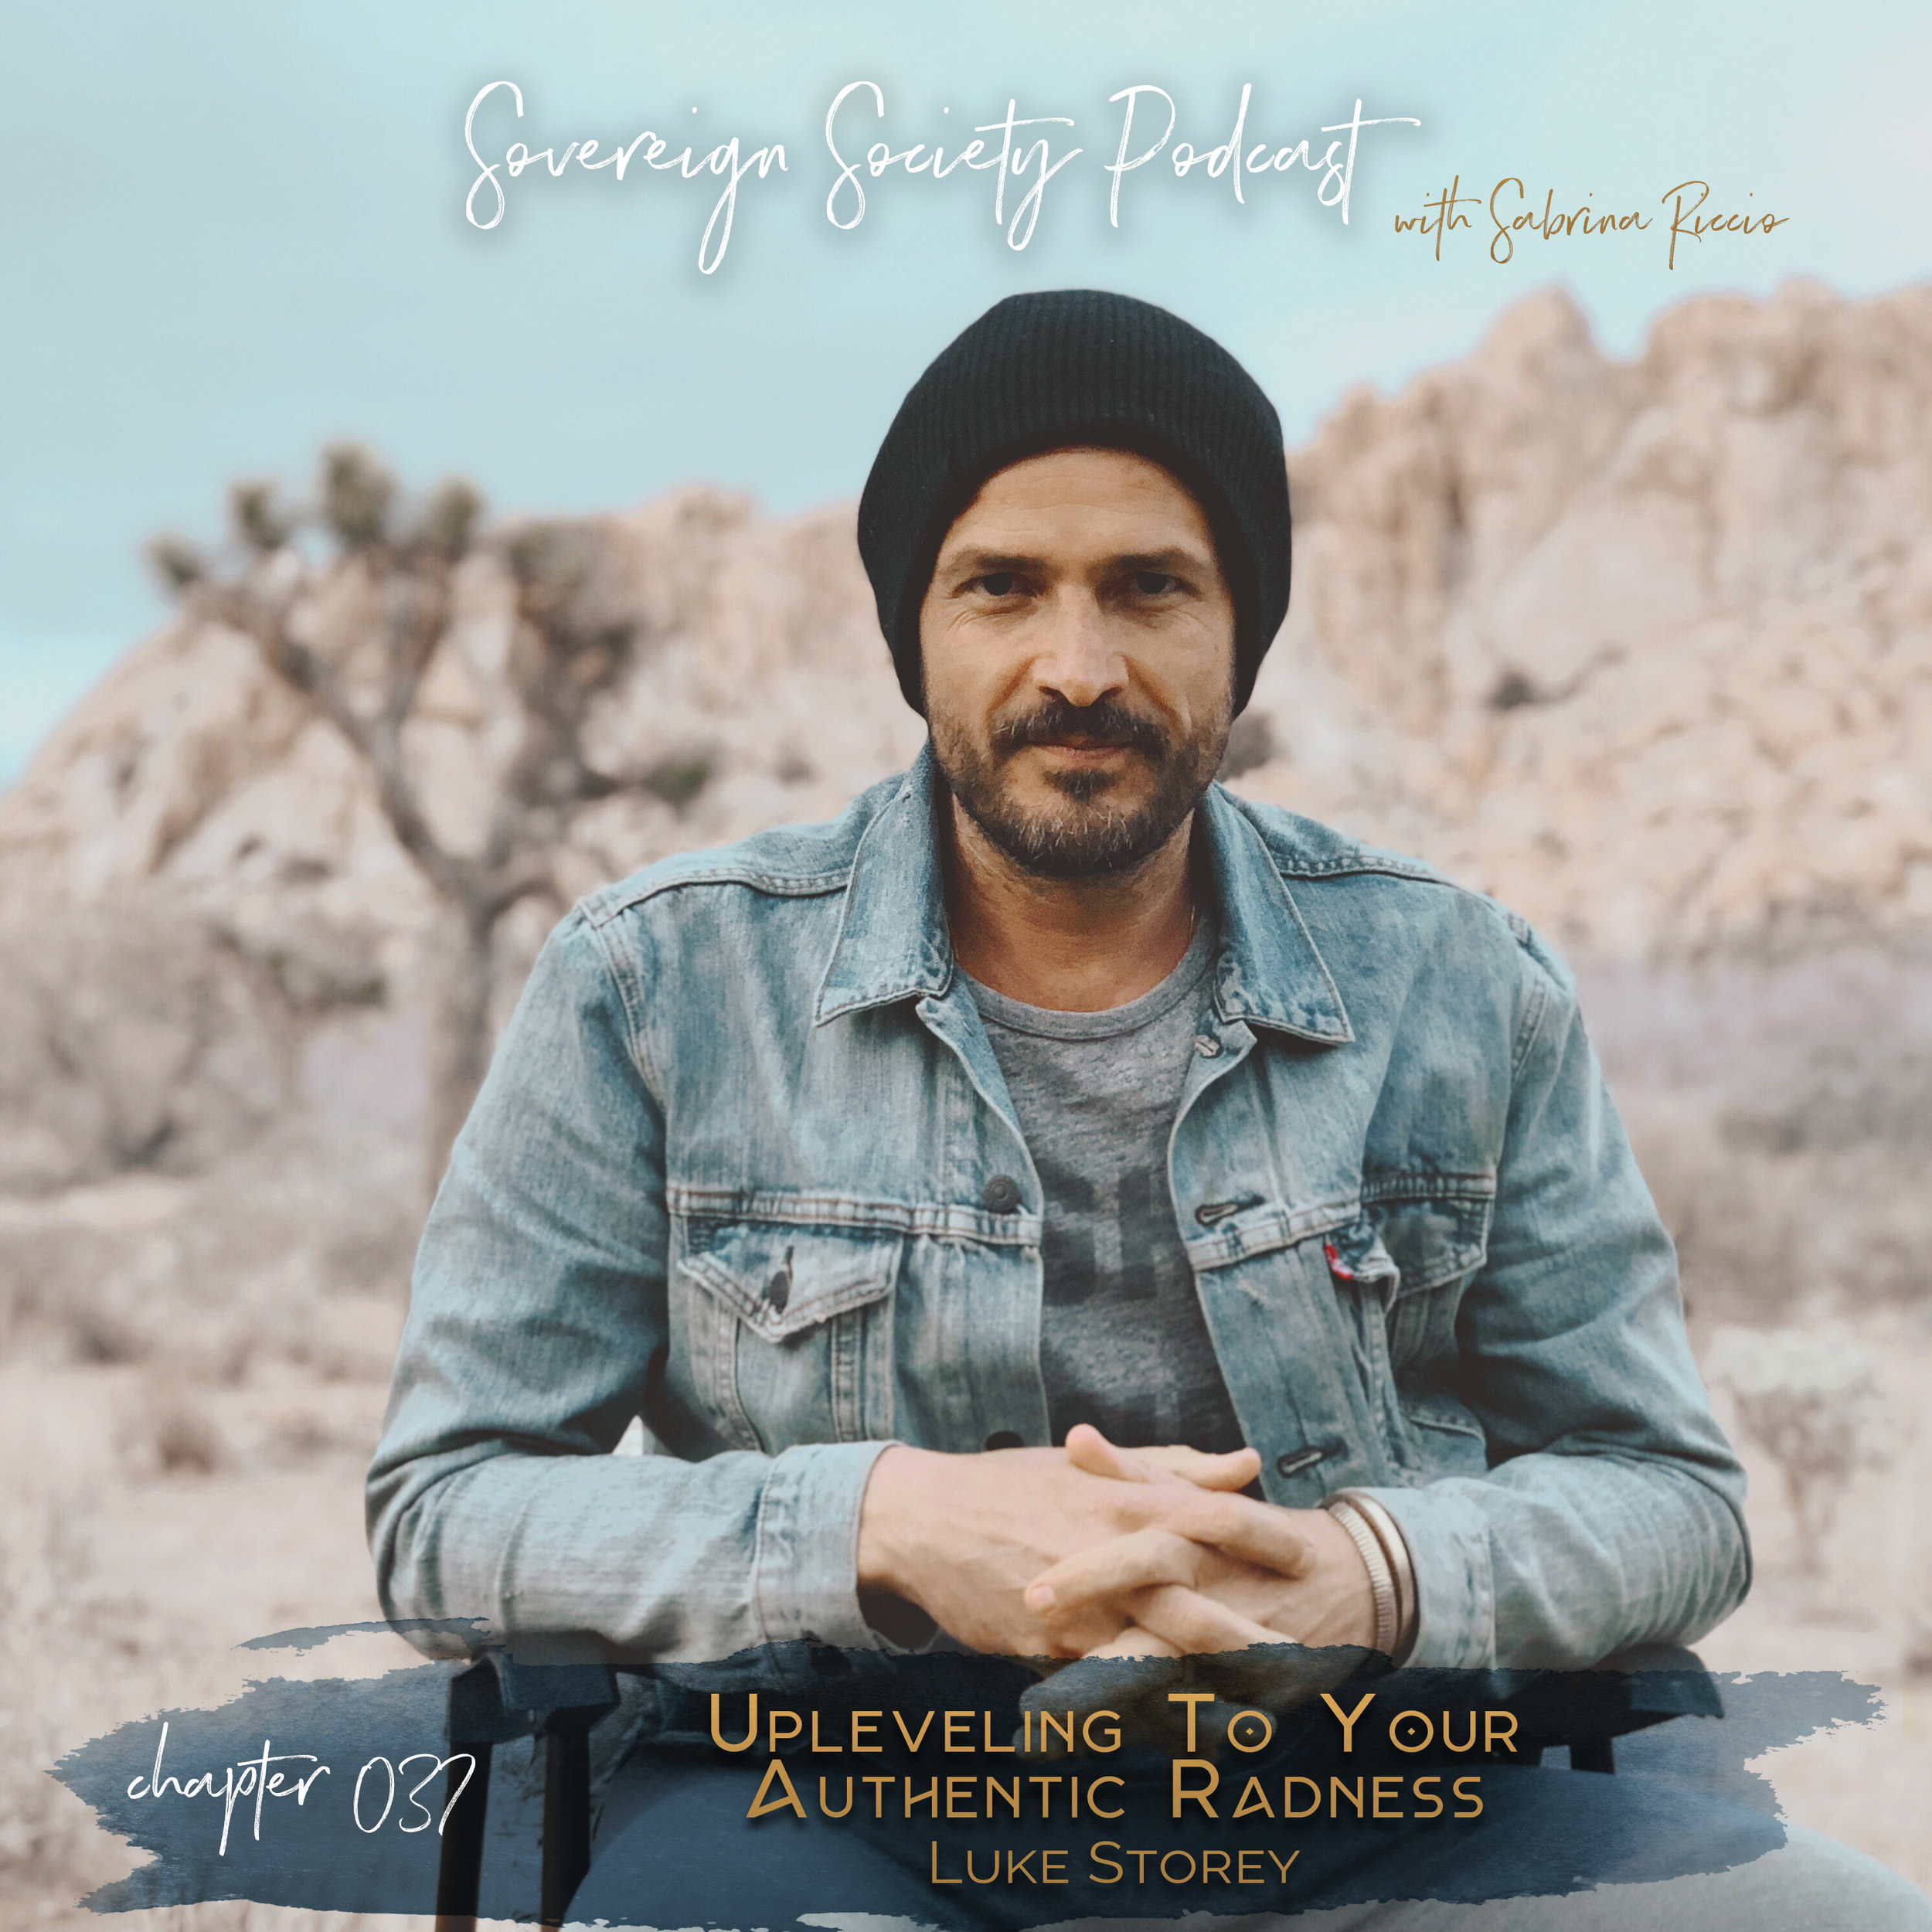 037 | Upleveling to Your Authentic Radness | Luke Storey // Sovereign Society Podcast